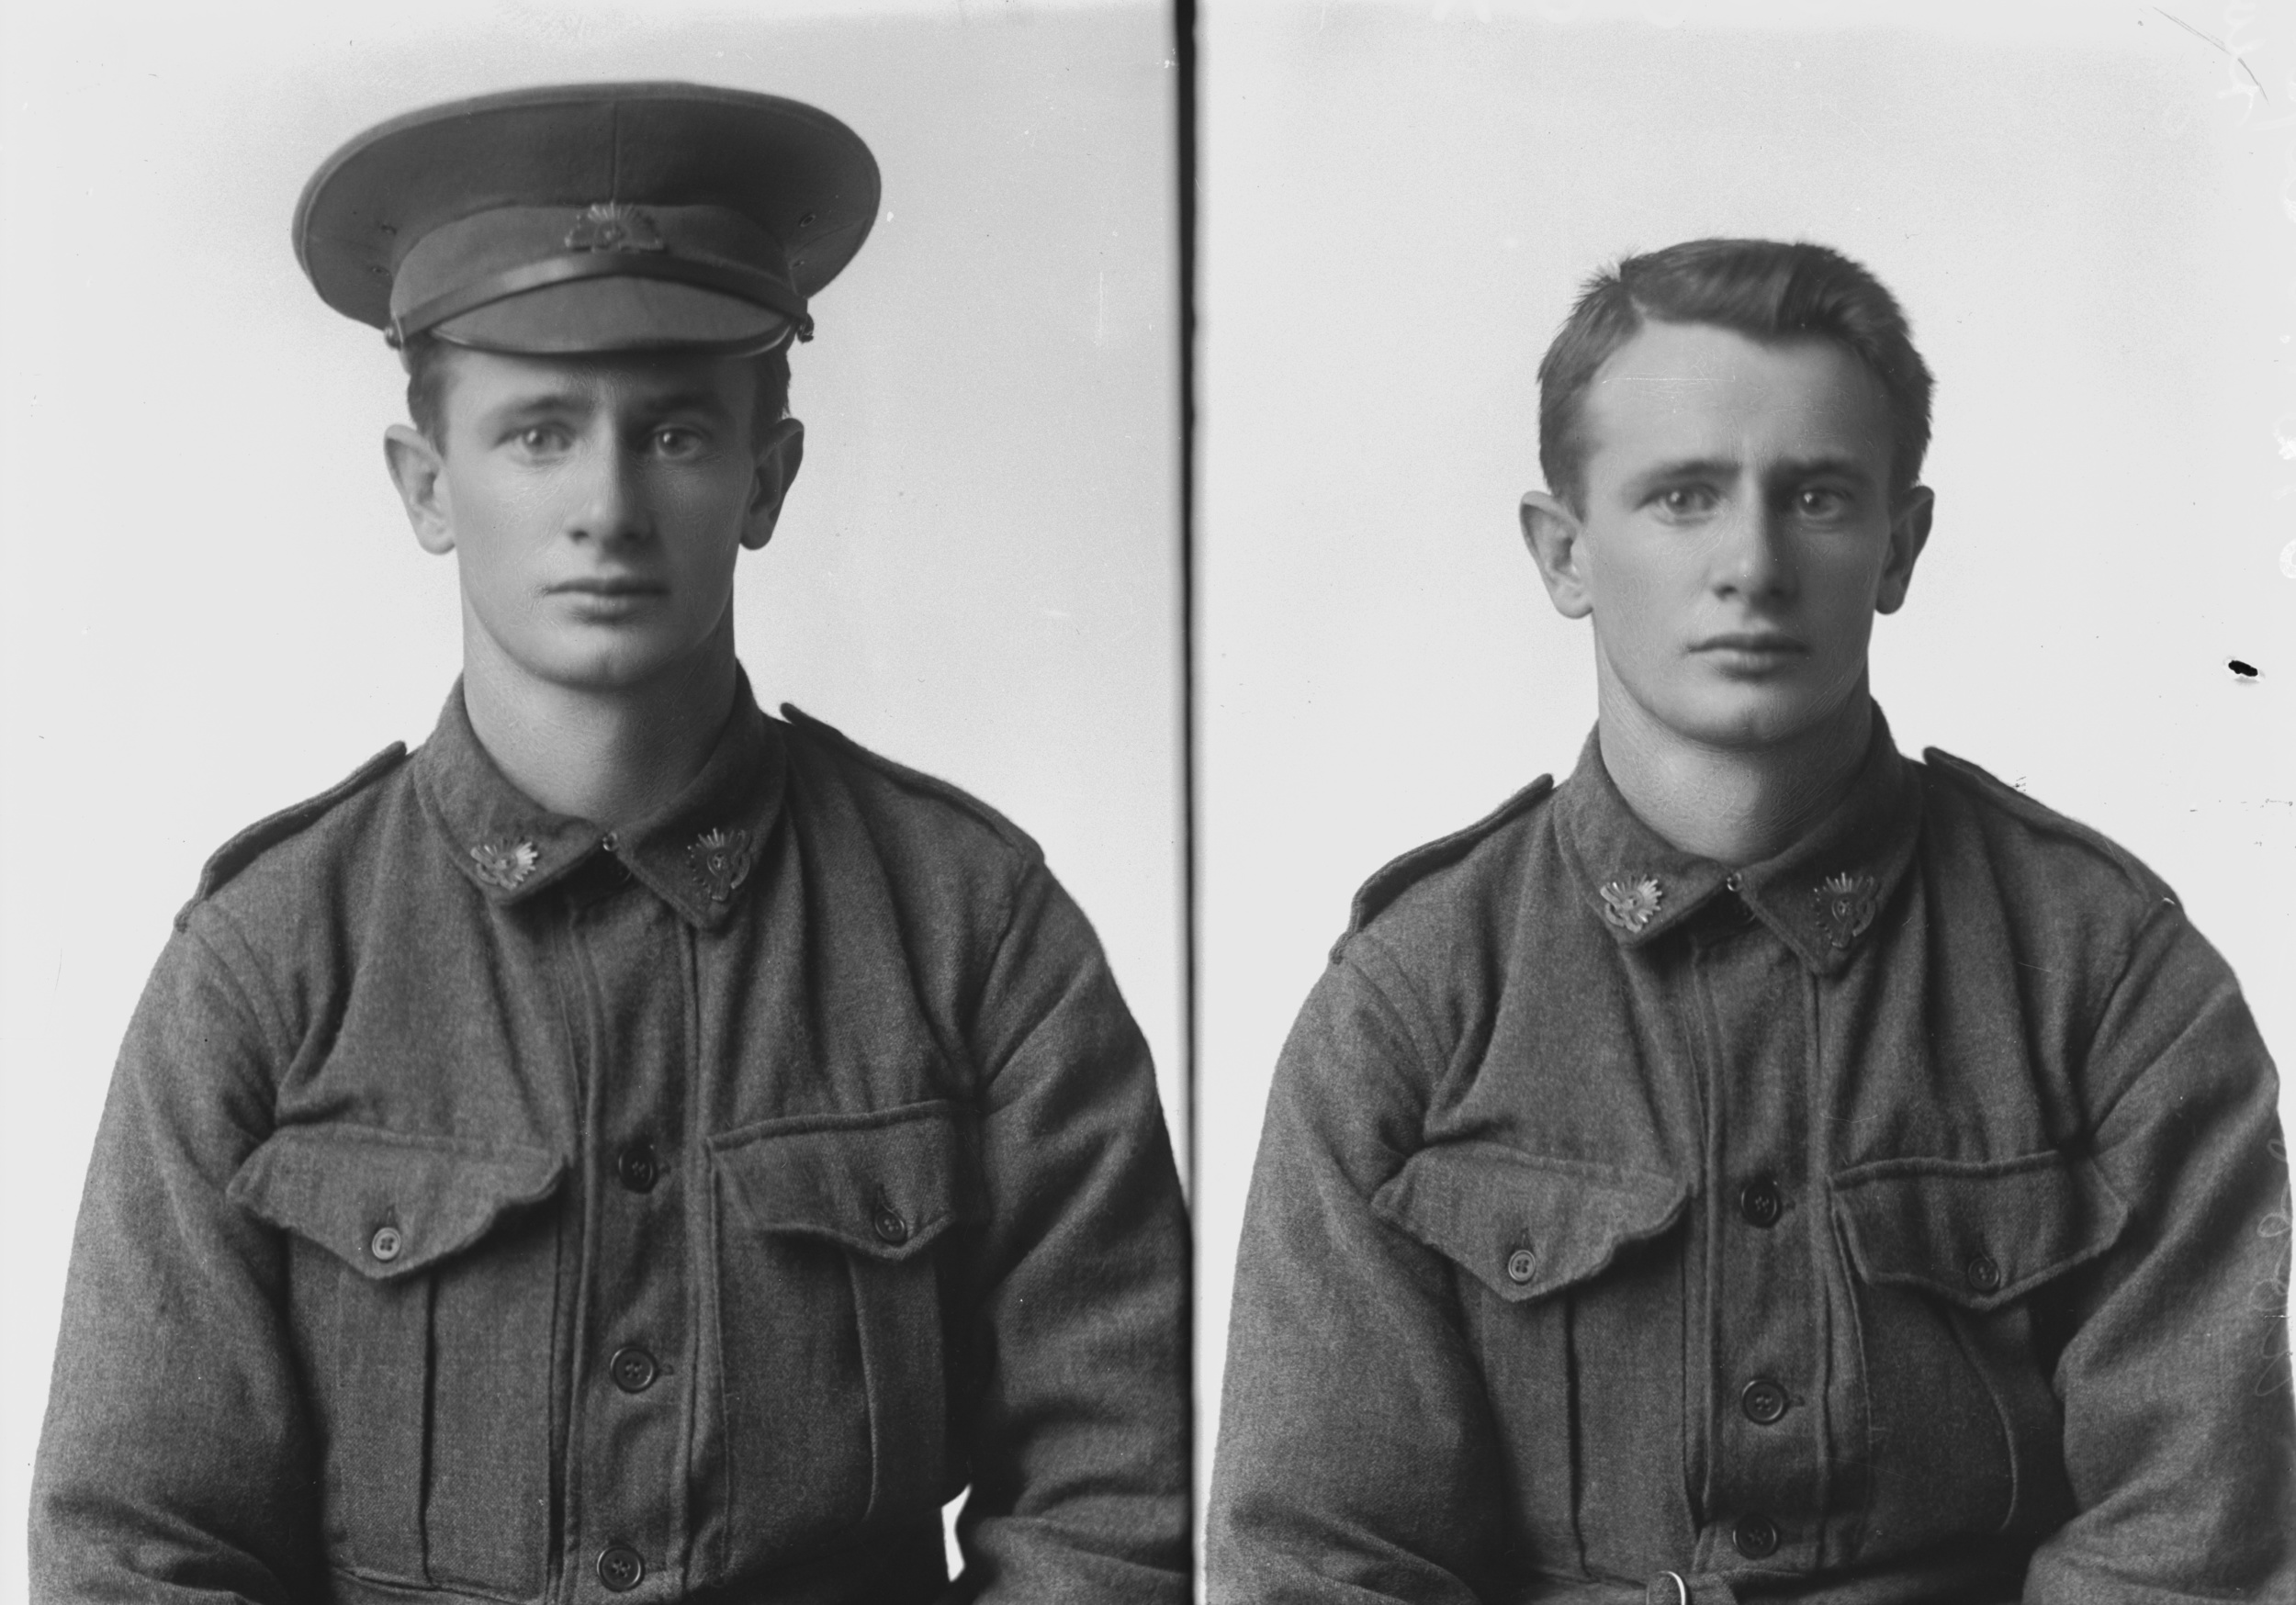 Photographed at the Dease Studio, 117 Barrack Street Perth WA Image courtesy of the State Library of Western Australia: 108201PD